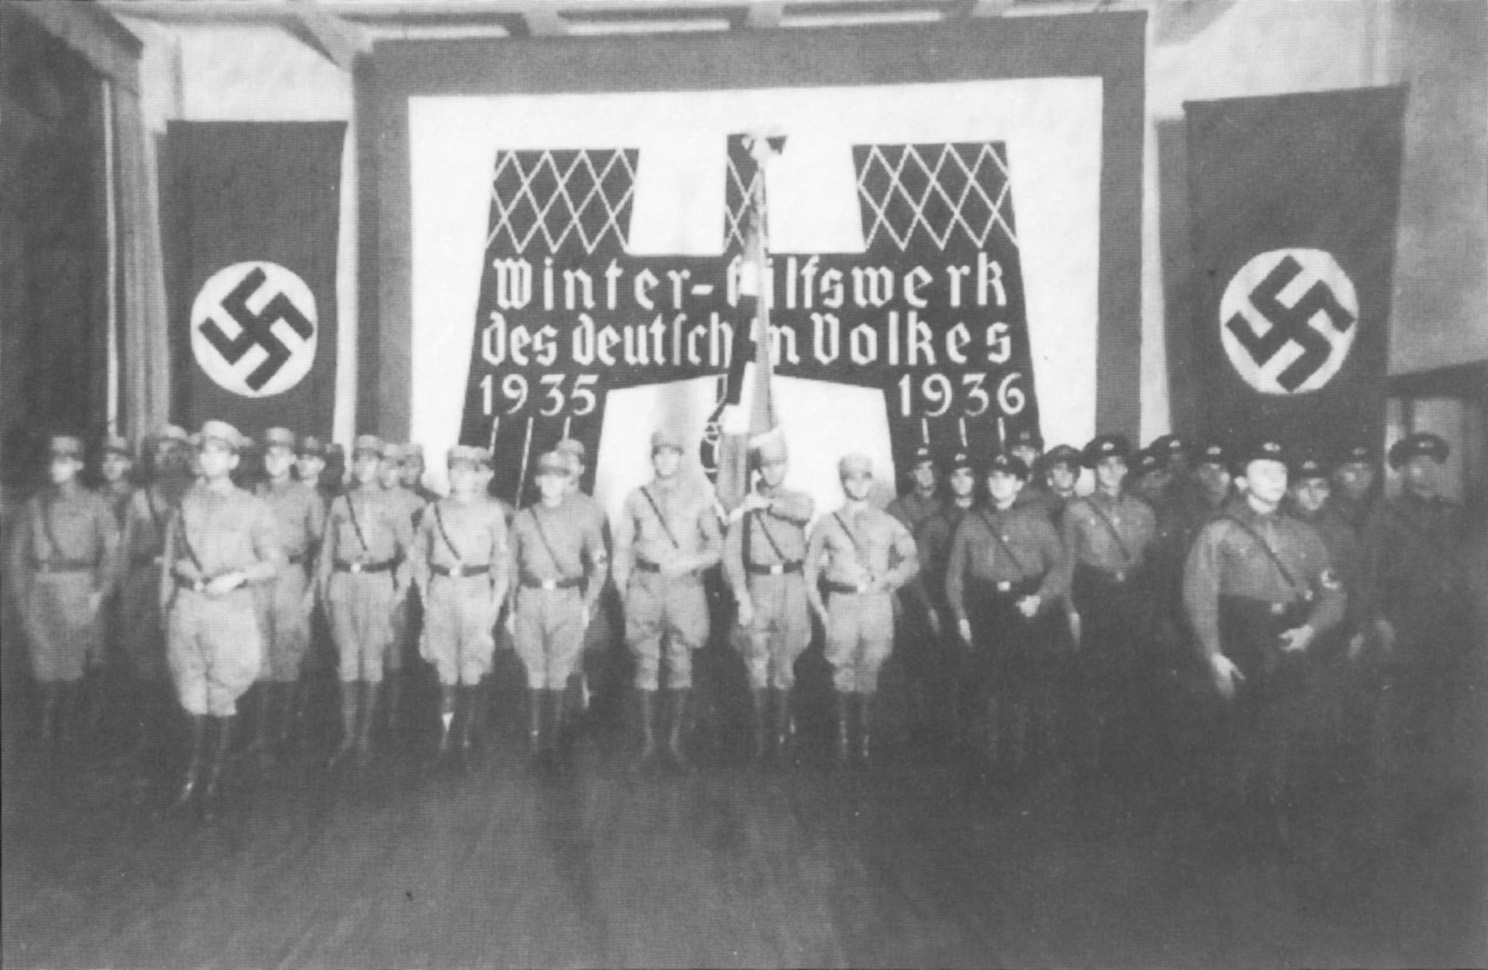 In-Search-Of-The-Third-Reich-In-Shanghai-6-.jpg